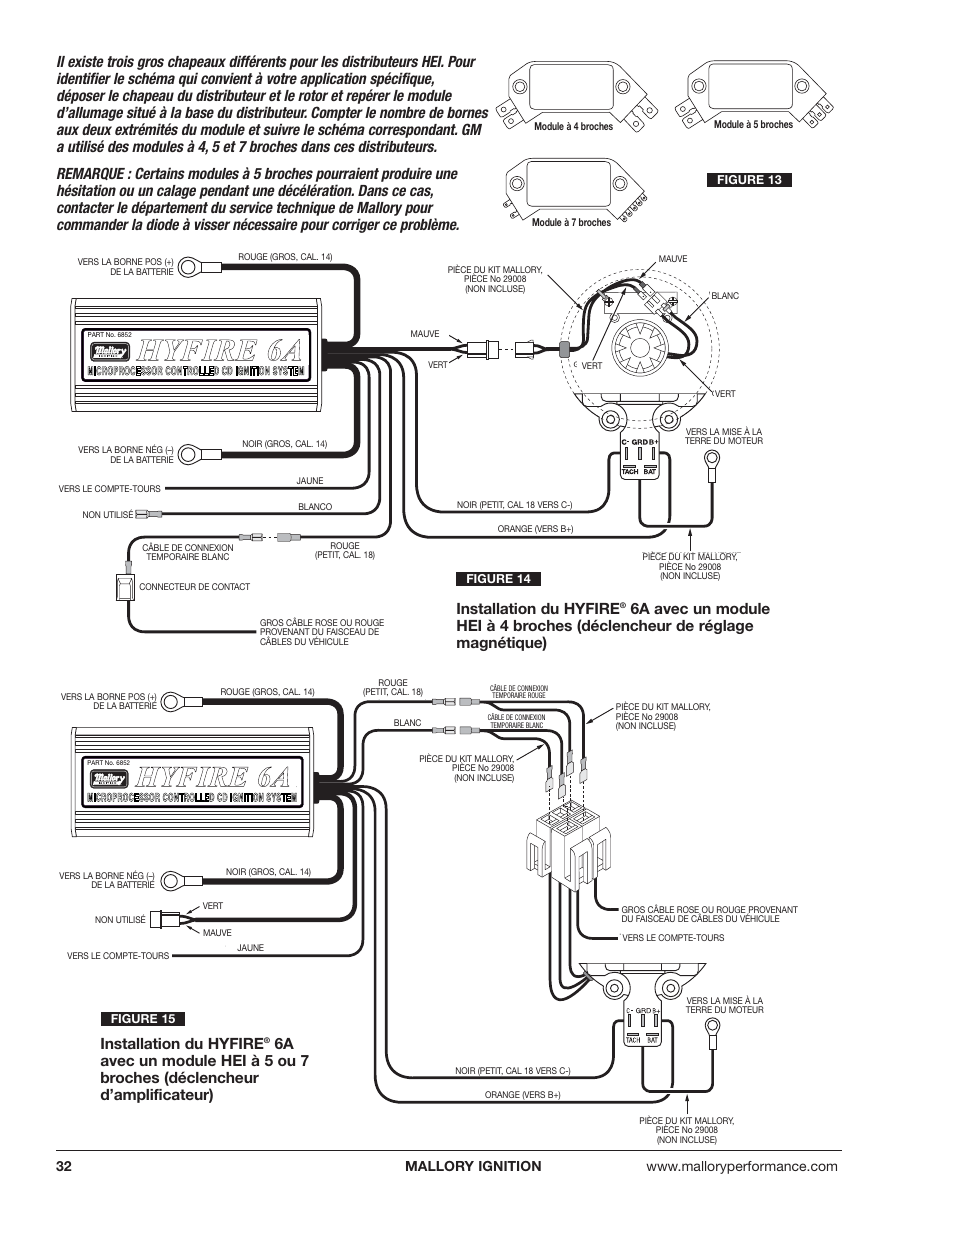 mallory ignition wiring diagram | wiring diagram  66.42.109.174